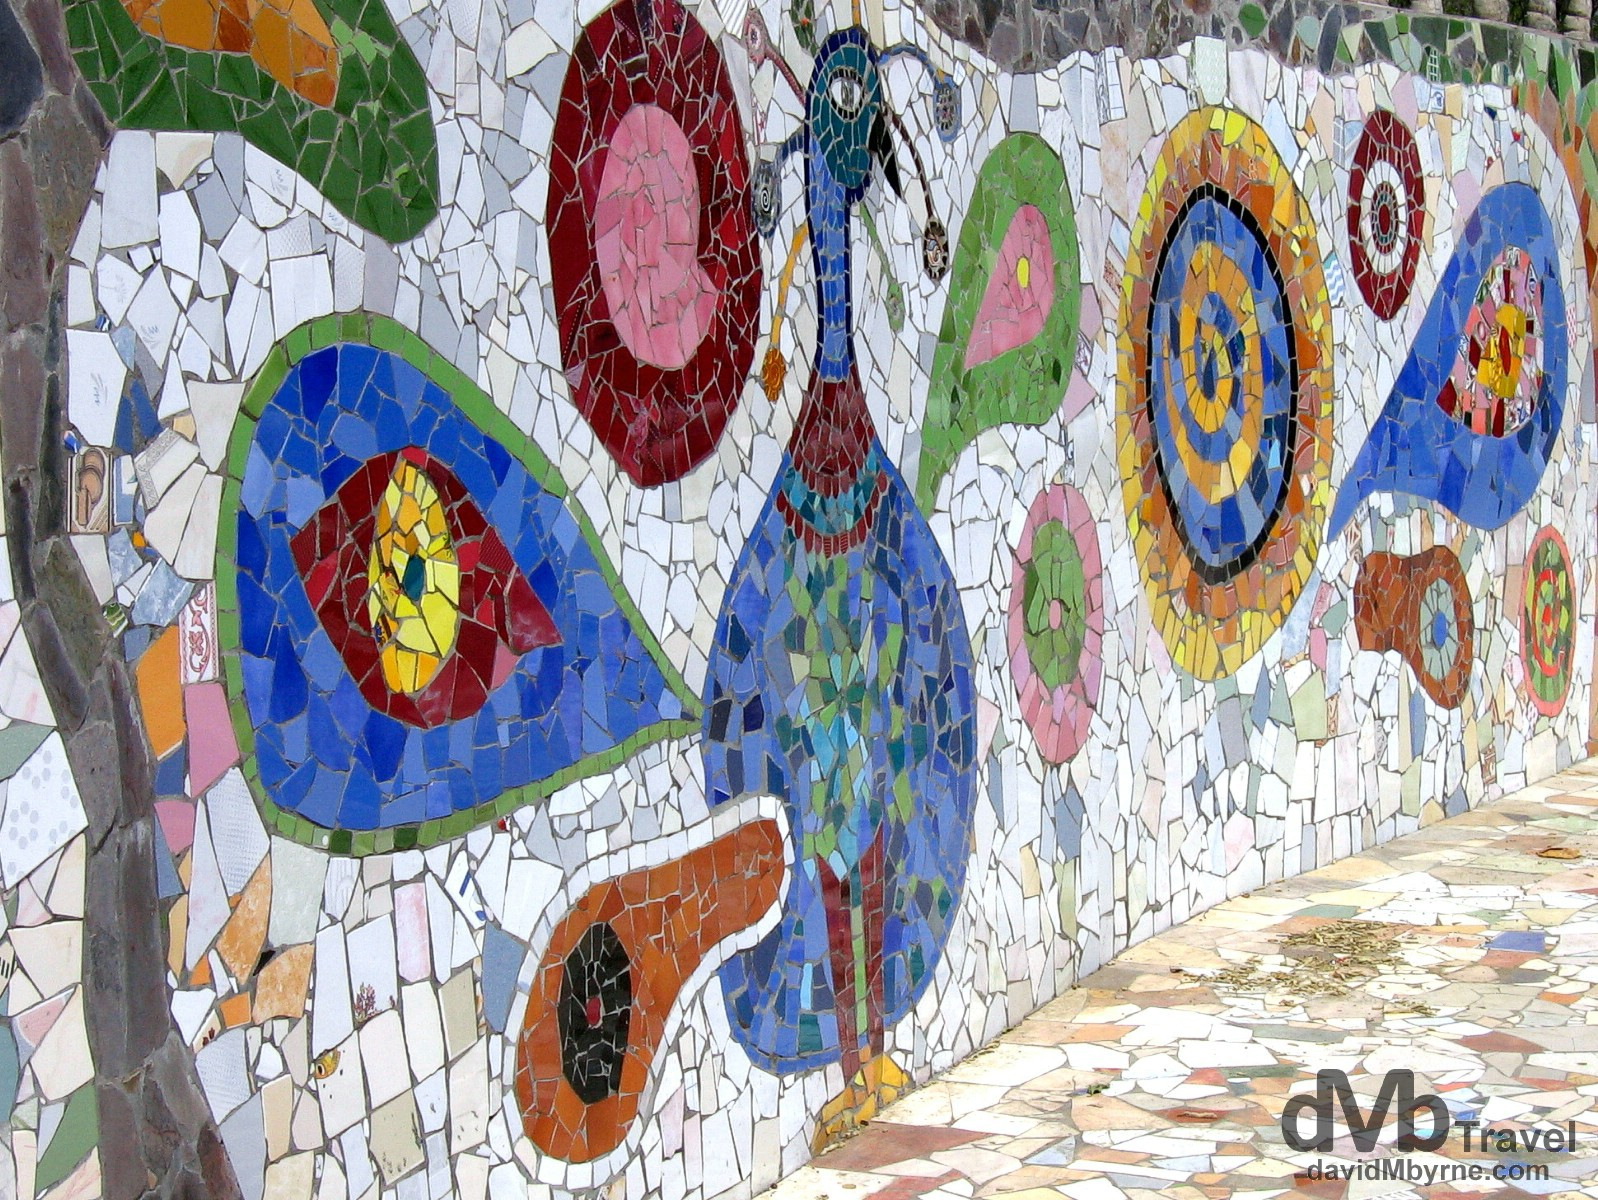 Tile mosaic in the Rock Garden in Chandigarh, Punjab, India. March 23, 2008.